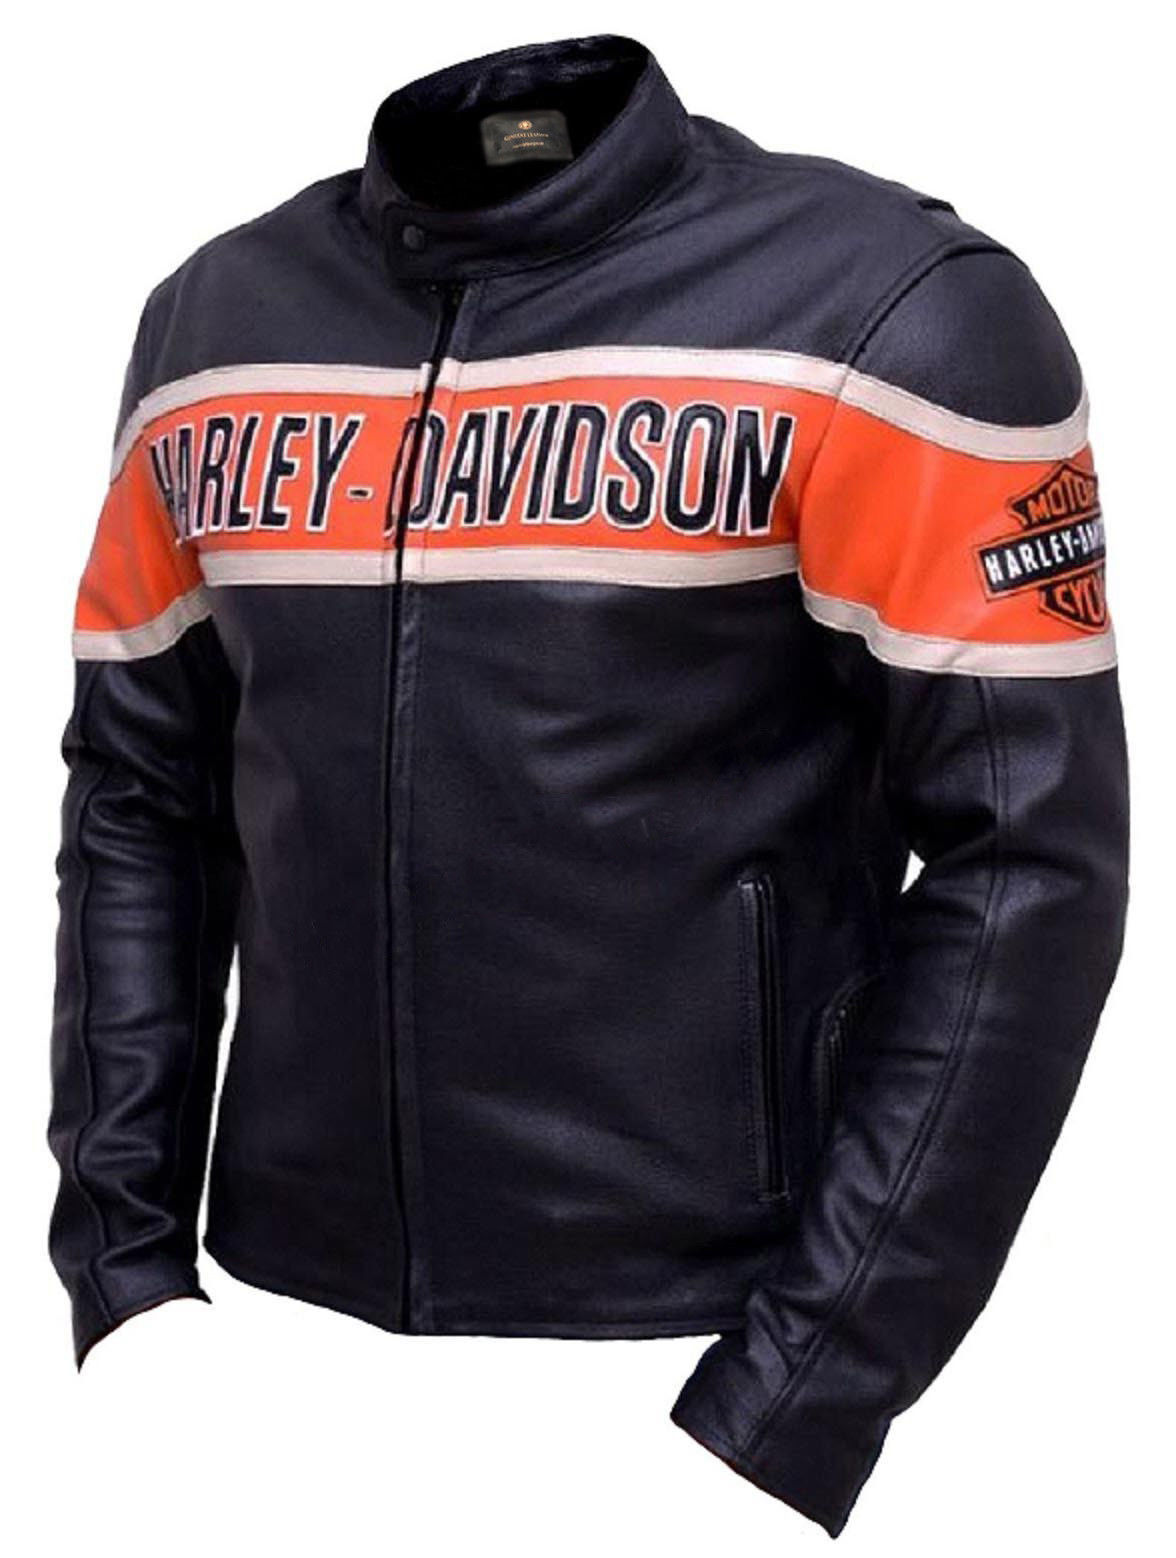 Harley Davidson Biker Genuine Leather Jacket2